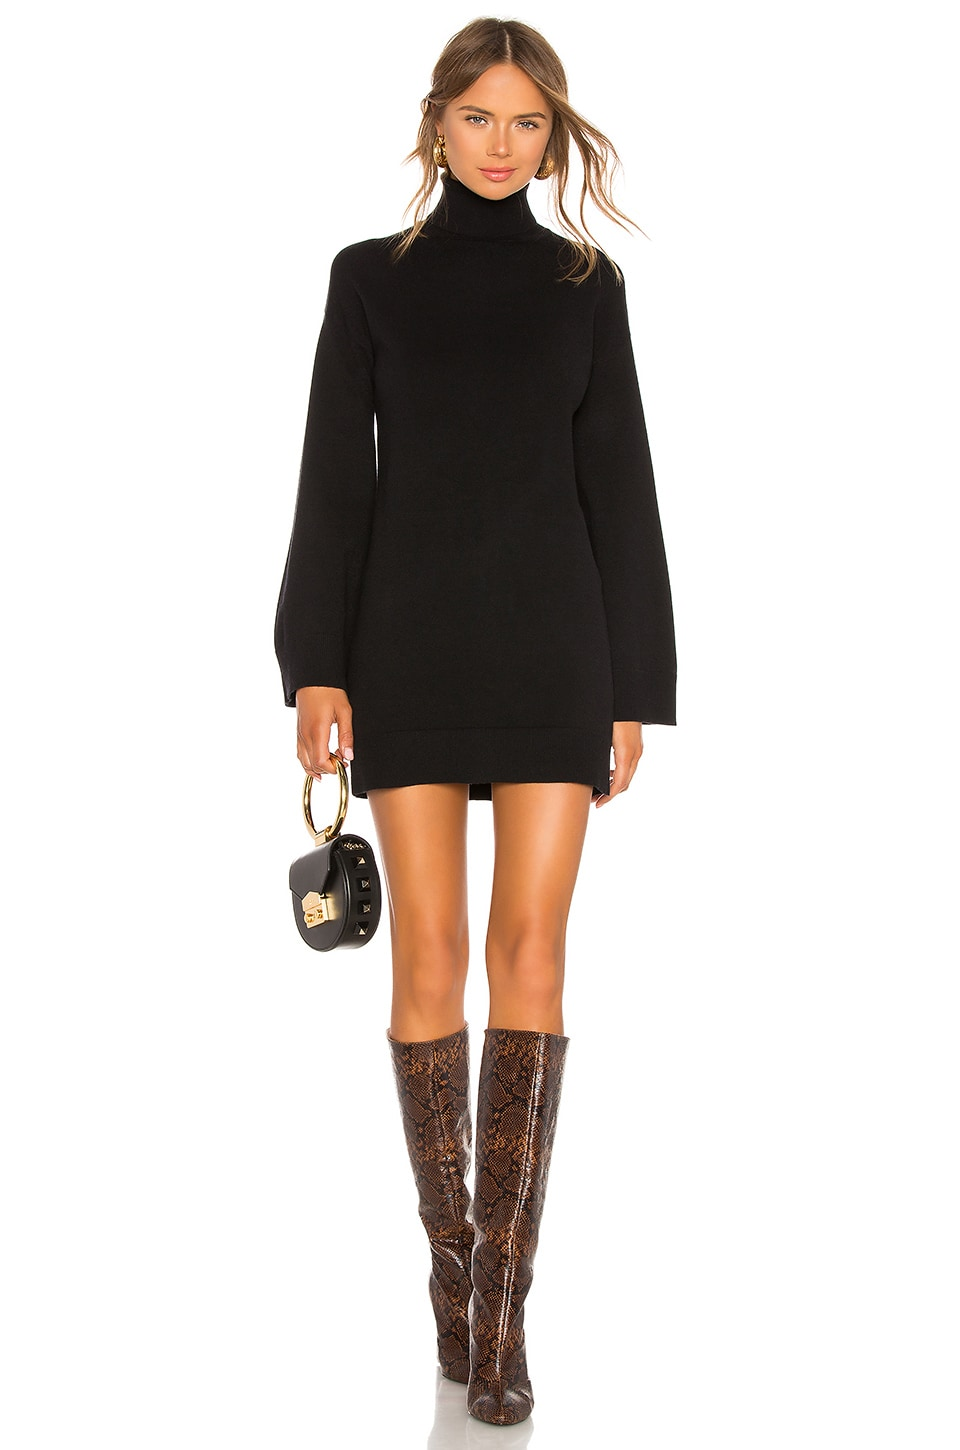 Fallon Sweater Dress             LPA                                                                                                       CA$ 214.60 10